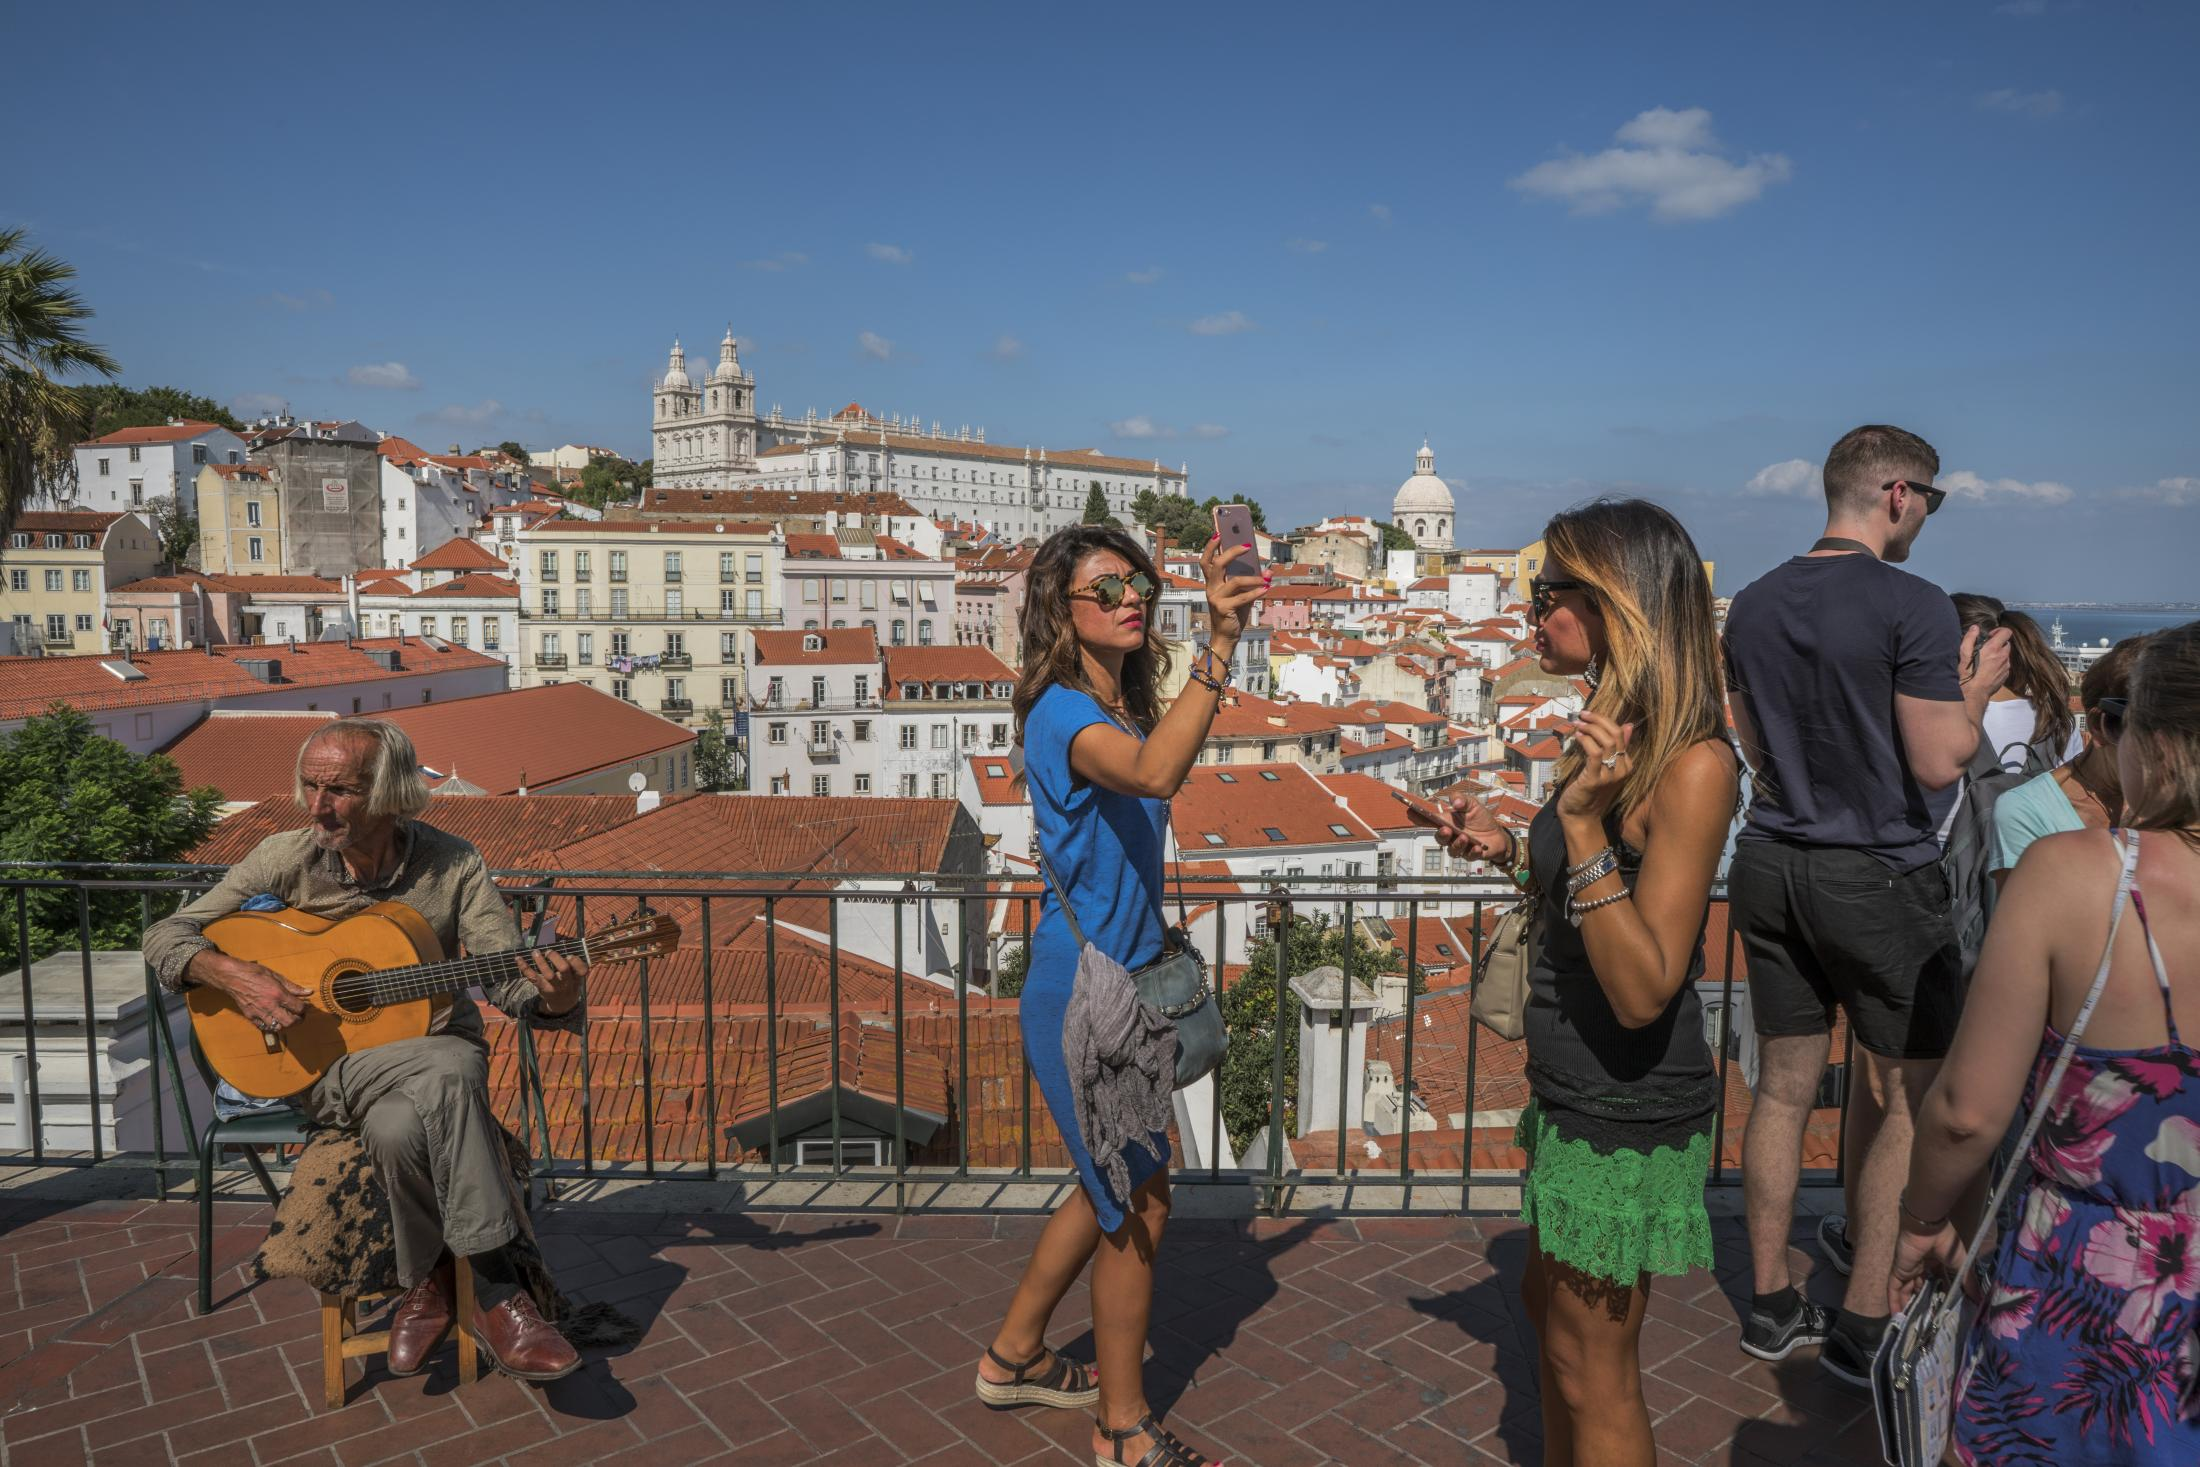 Tourists in Alfama, a historic working class neighborhood in Lisbon that became one its most popular touristic destinations. Several longtime residents of the area, most elderly and poor, are being evicted from their homes so landlords can rent their apartments on Airbnb. Booming tourism has been the engine of Portugal's economic recovery of recent years after an economic crisis in 2008 devastated its economy. The sector today employs 12,4% pf the population os Lisbon and brough in € 8 billion to the city's economy in 2015